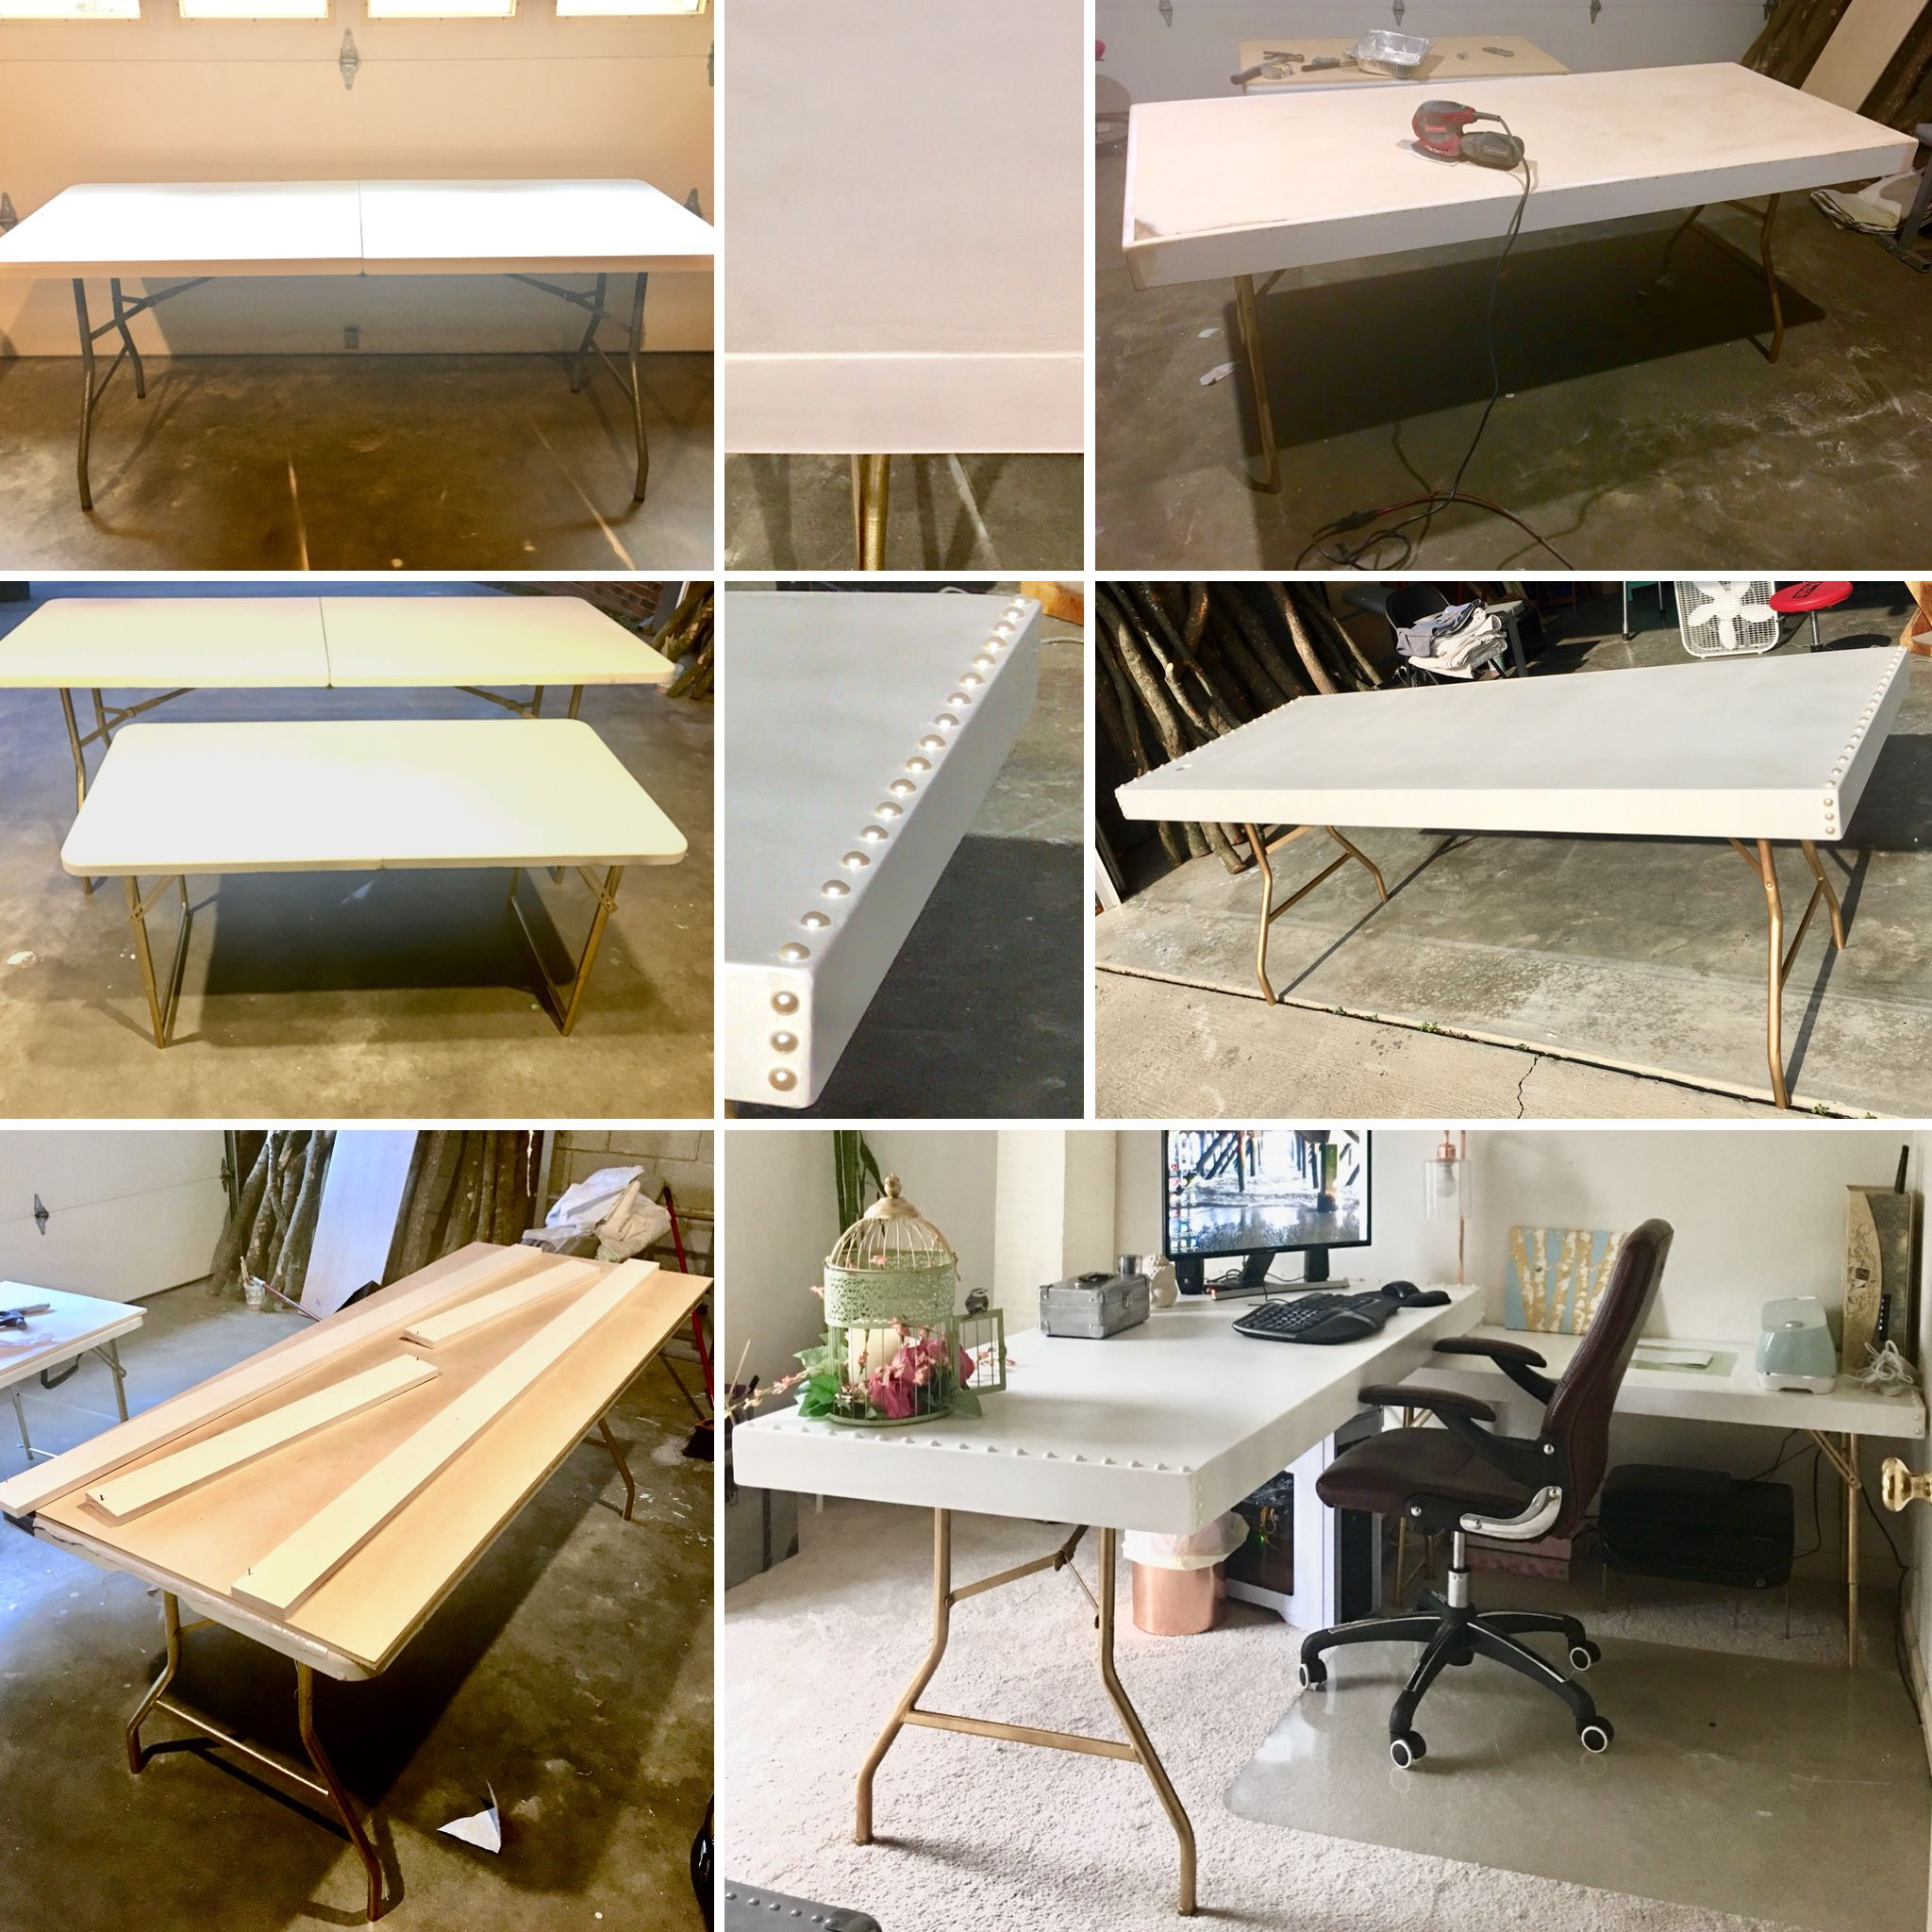 Diy L Shaped Desk Two Folding Tables 1 6ft 1 4ft Legs Spray Painted Gold Wood Box Top Painted With White Chalk Paint Then Tent Living Home Decor Home Diy